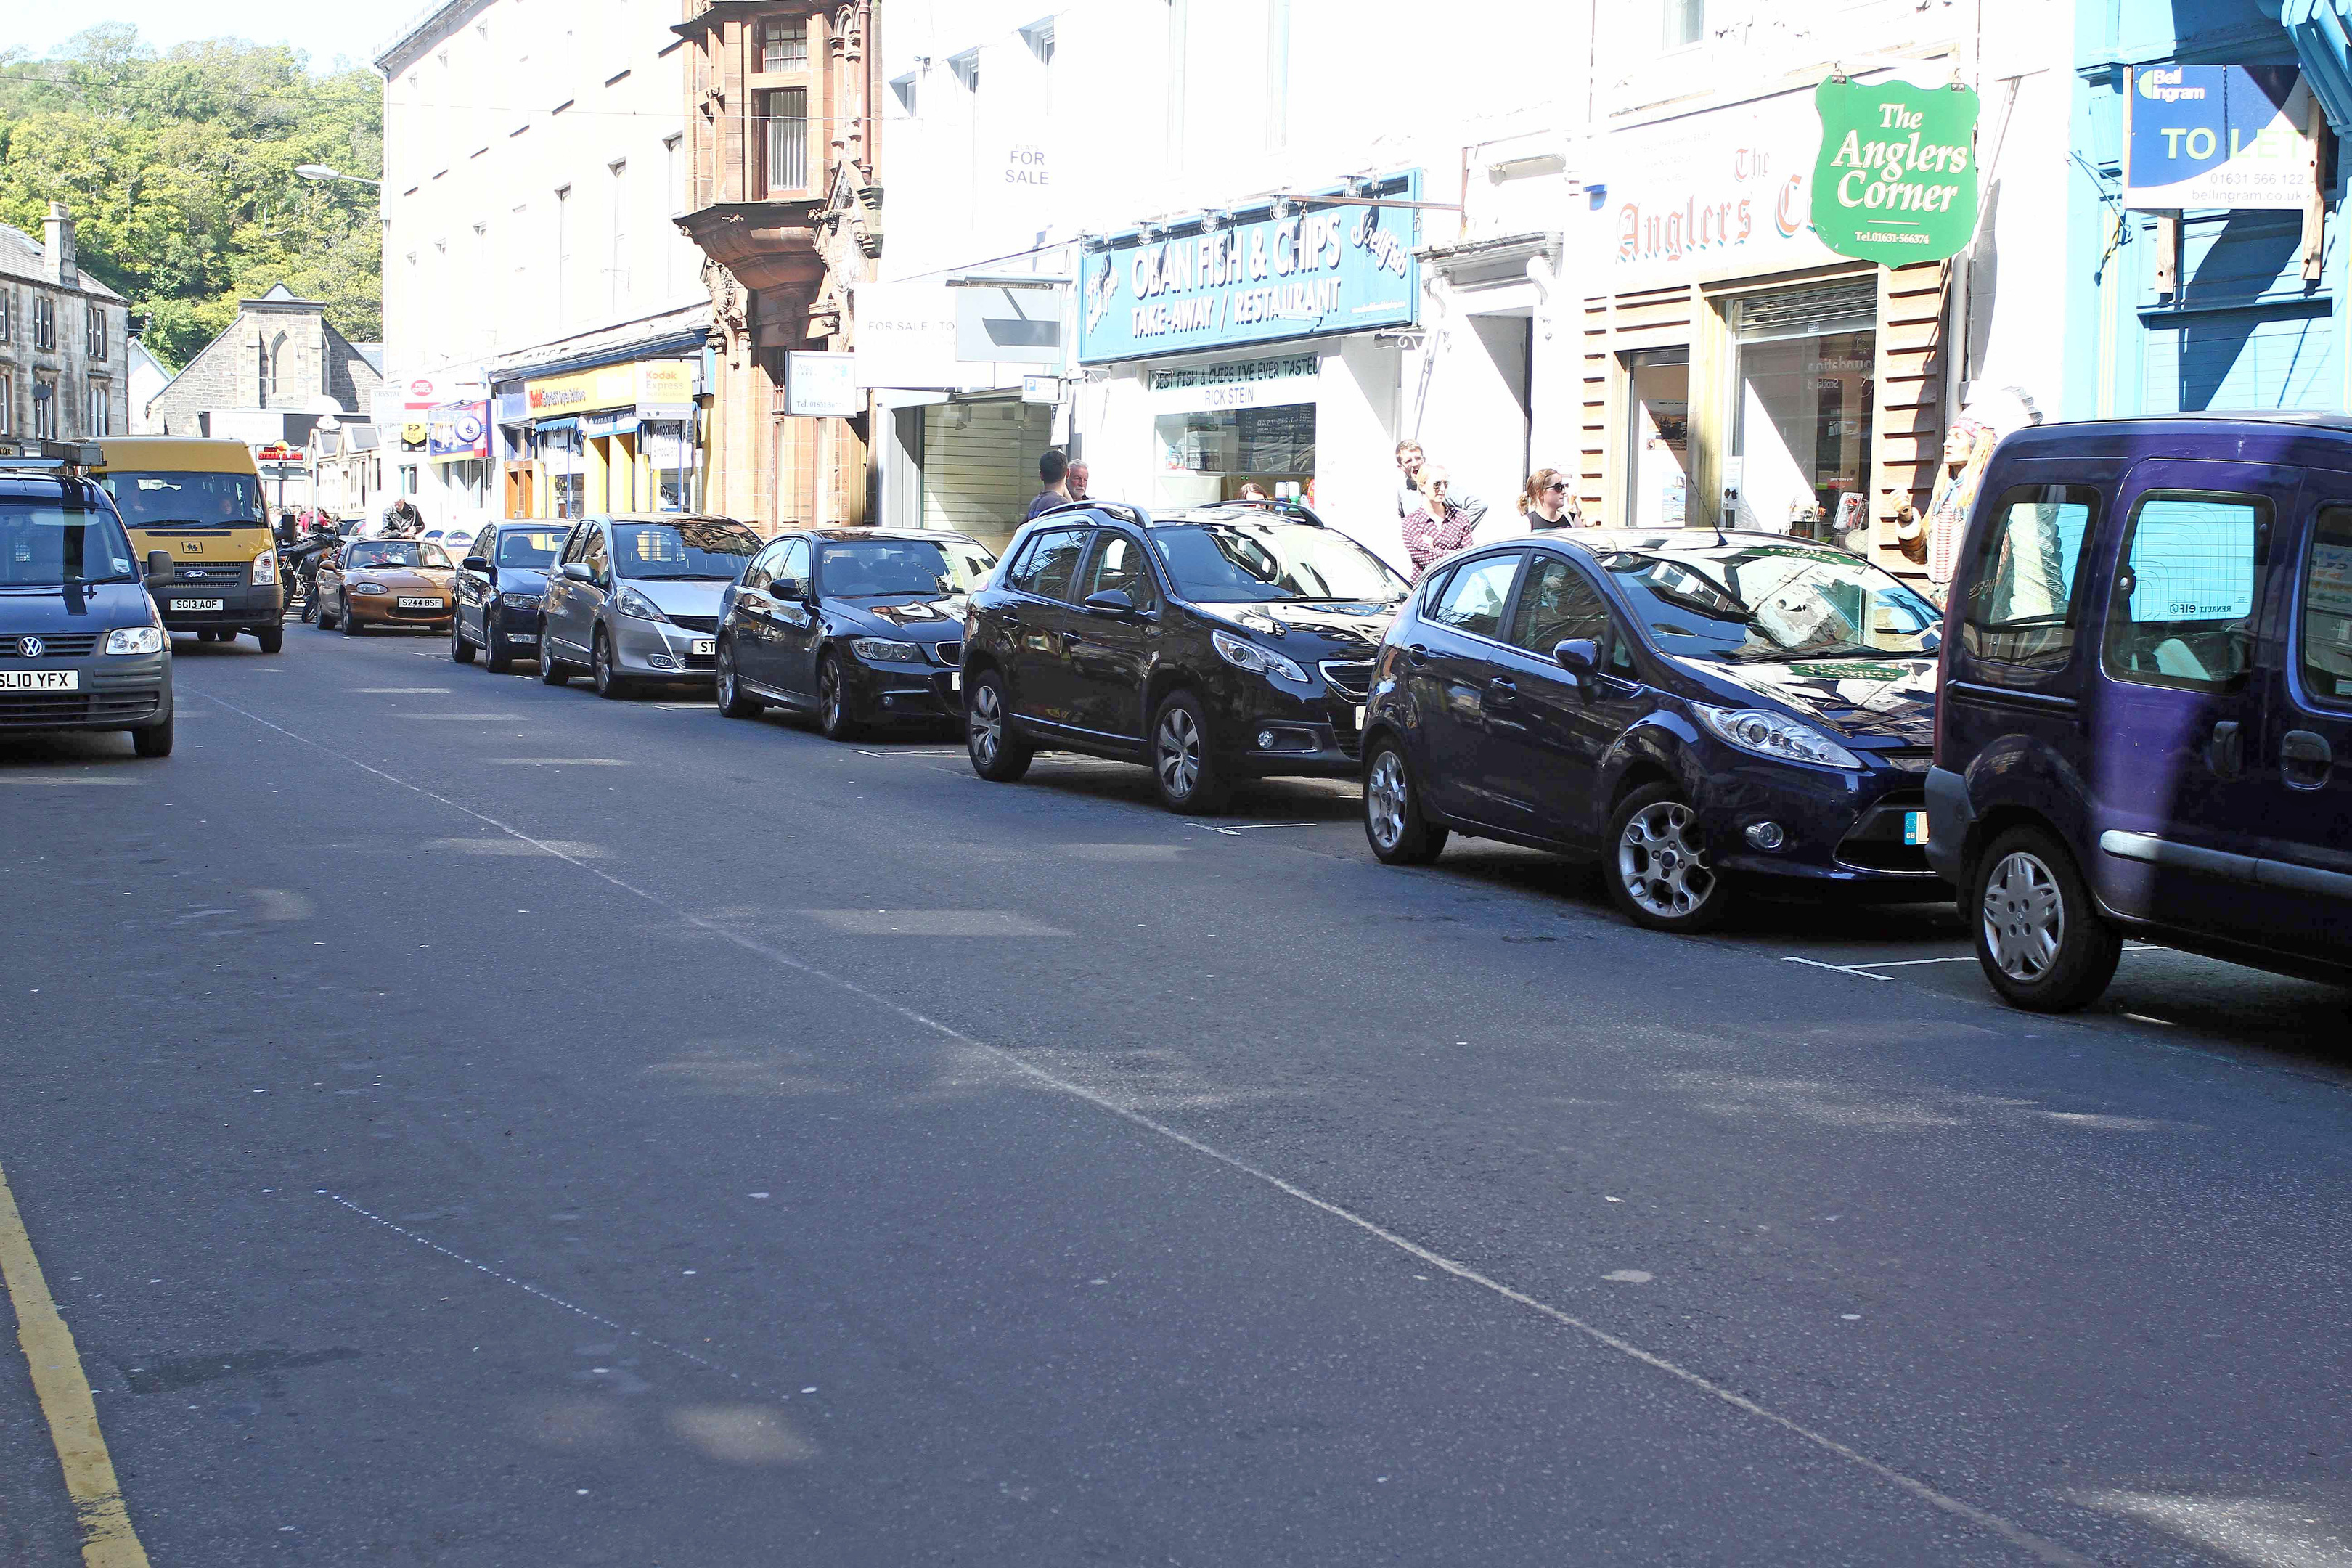 Cars parked in George Street Oban where parking charges are under revue in the town of Oban picture kevin mcglynn